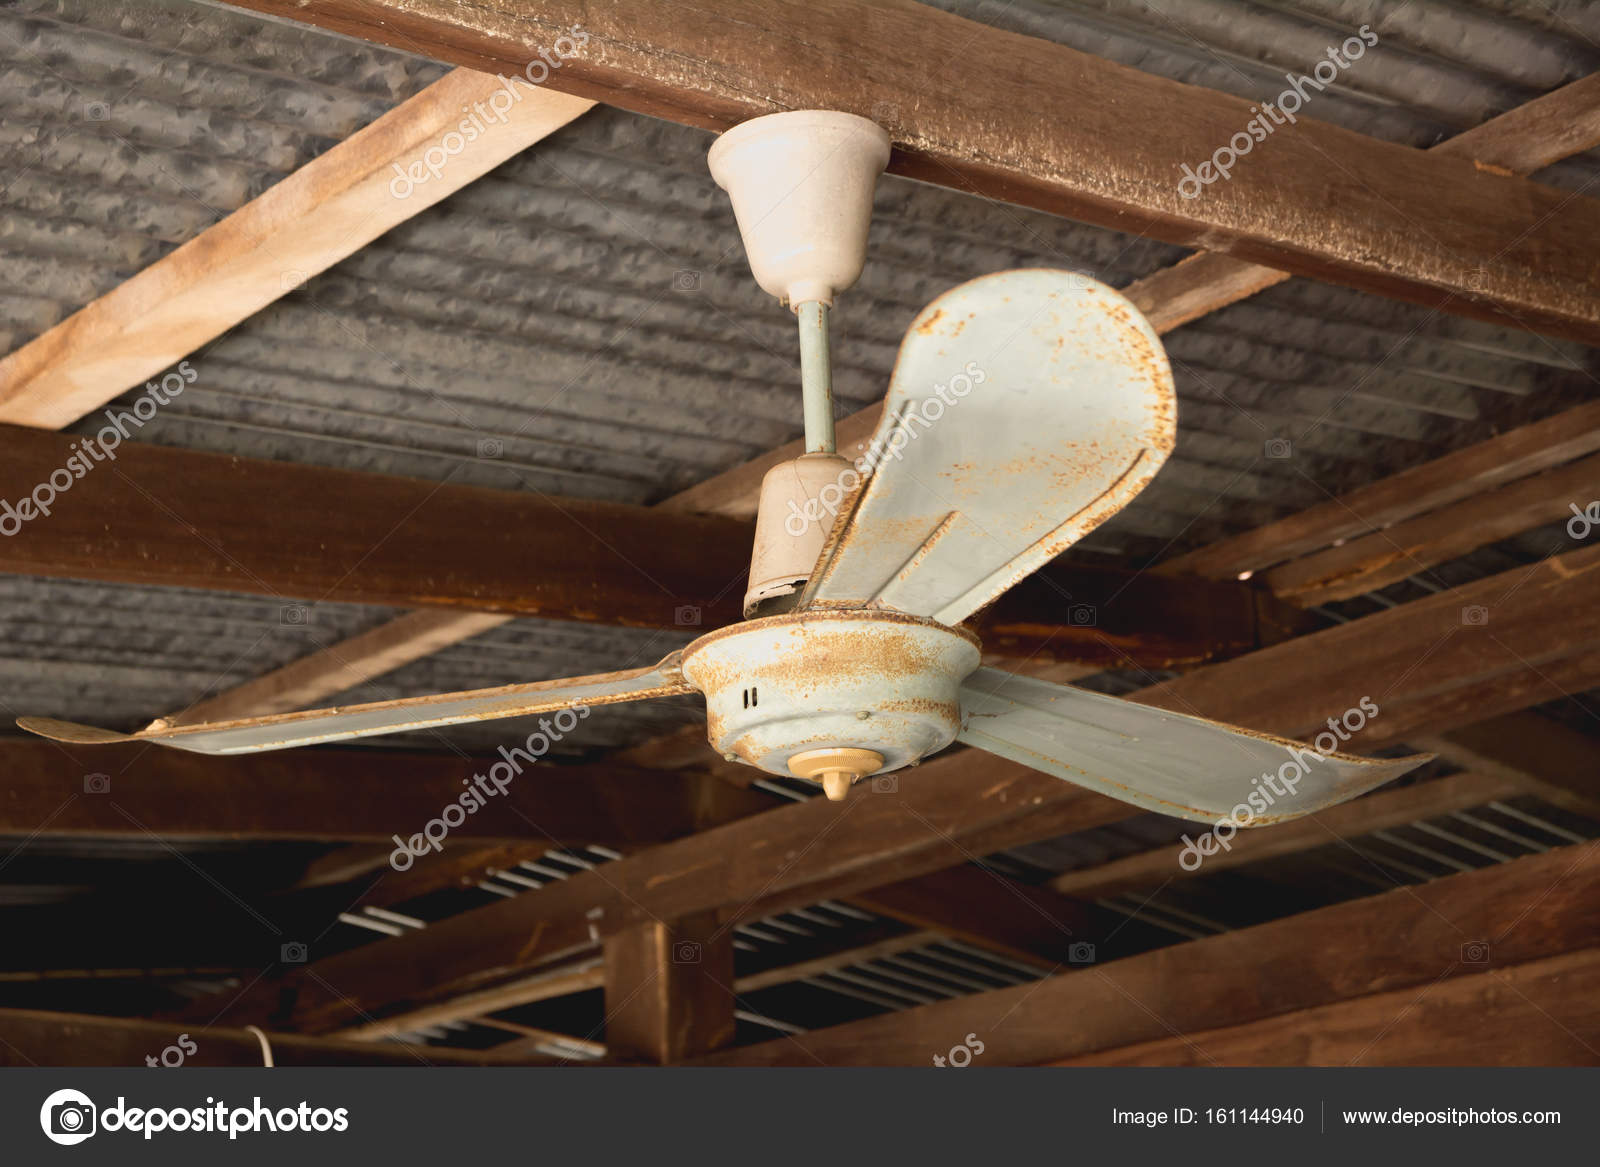 Electric Ceiling Fan Old Rusty Ceiling Fan On Rusty On Roof In Old House Stock Photo C Krisana Antharith Hotmail Com 161144940